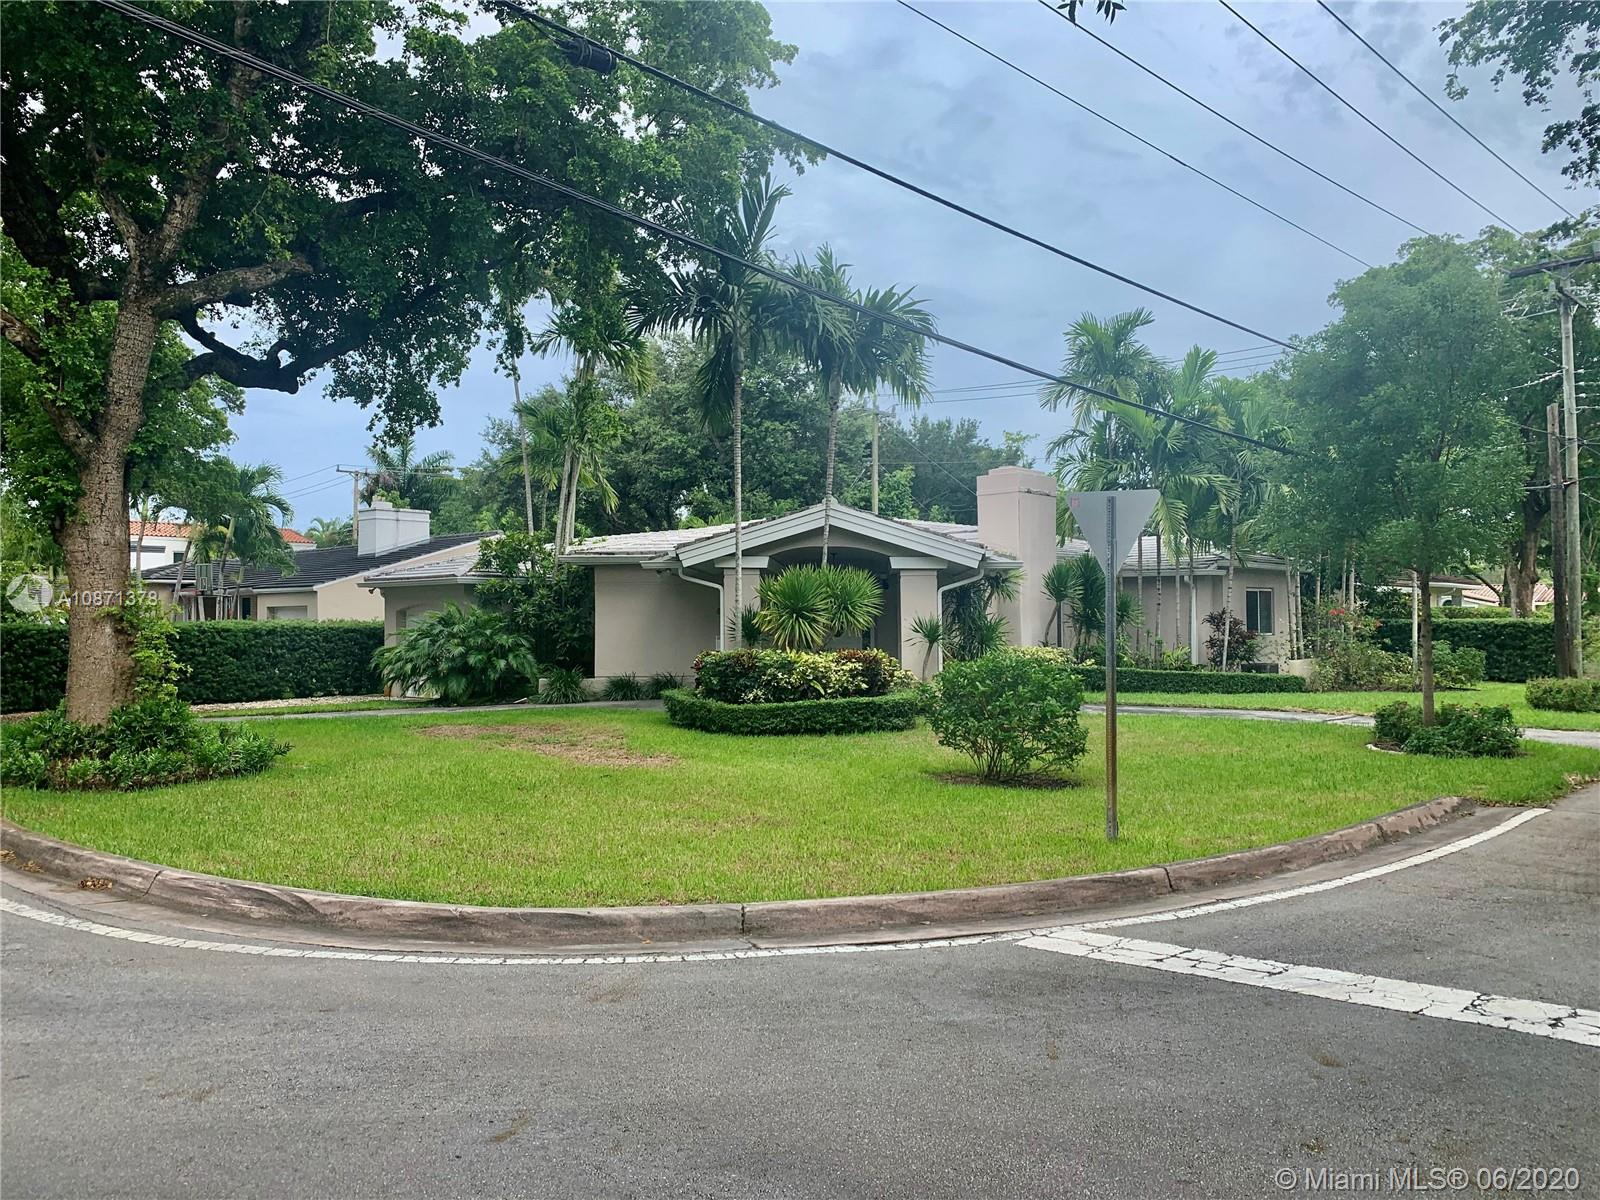 648 Sevilla Ave, Coral Gables, Florida 33134, 3 Bedrooms Bedrooms, ,2 BathroomsBathrooms,Residential,For Sale,648 Sevilla Ave,A10871378